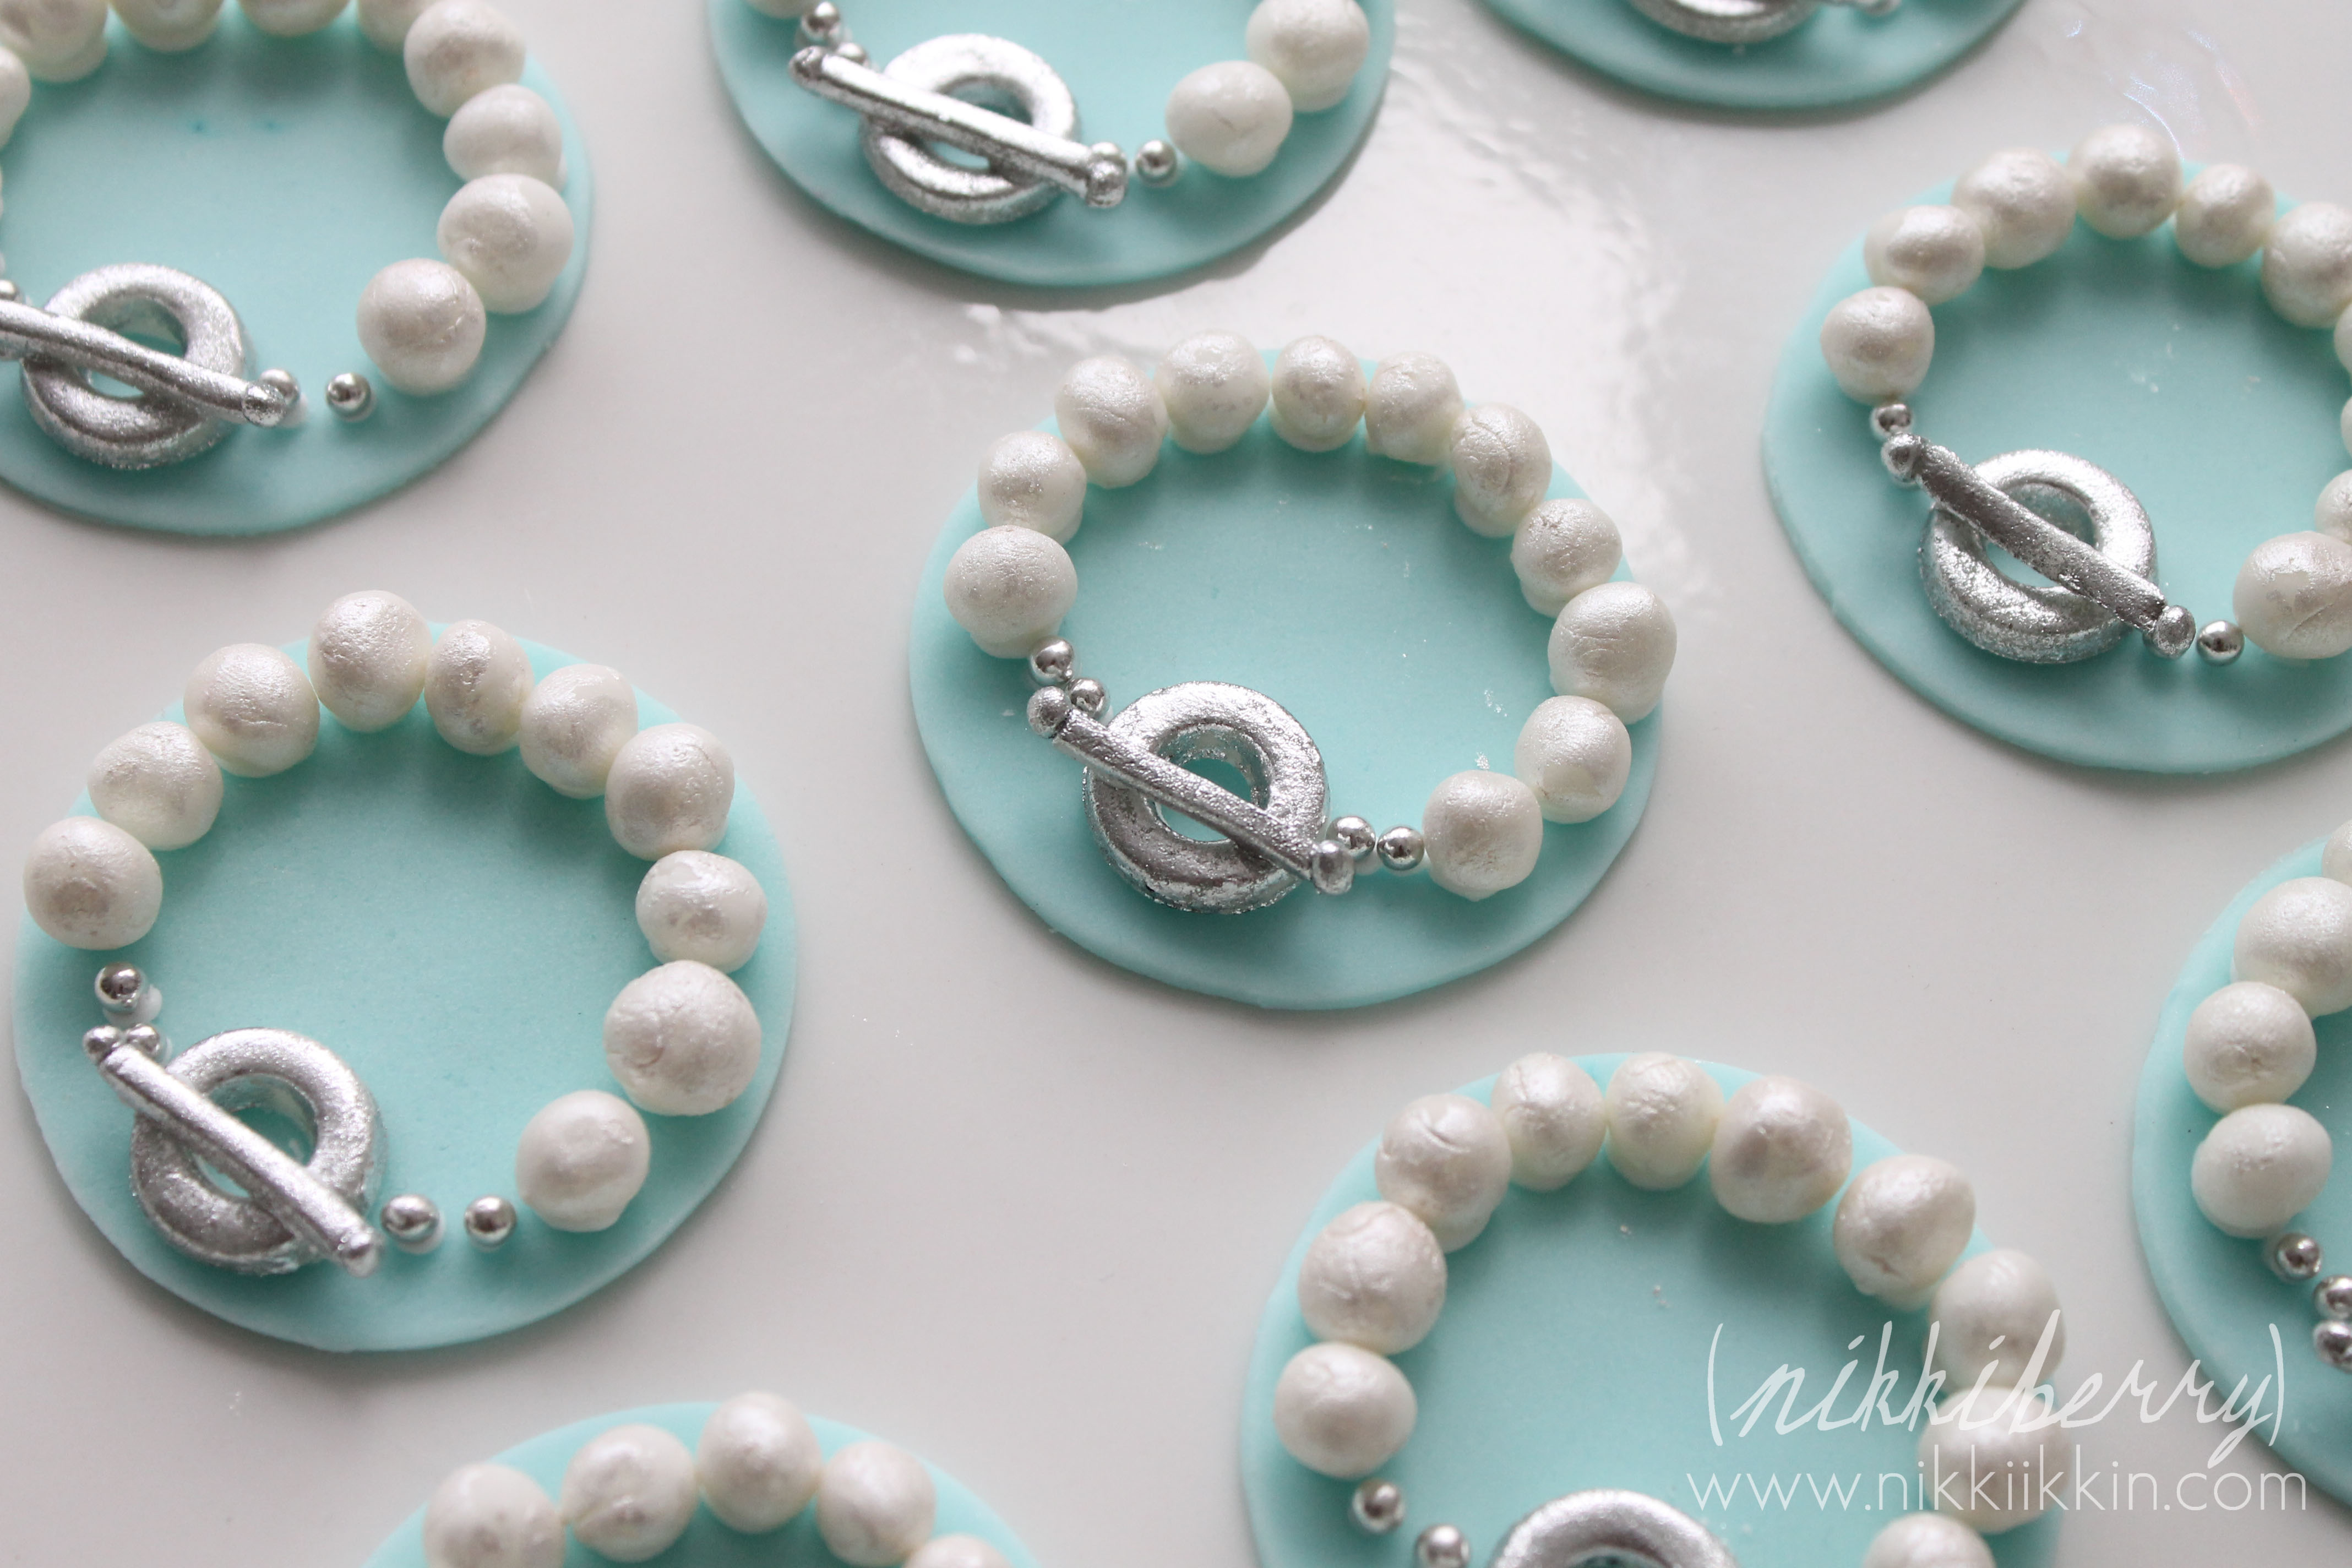 f8f3e530e Pearl and Toggle Bracelet TIffany and Co Toppers